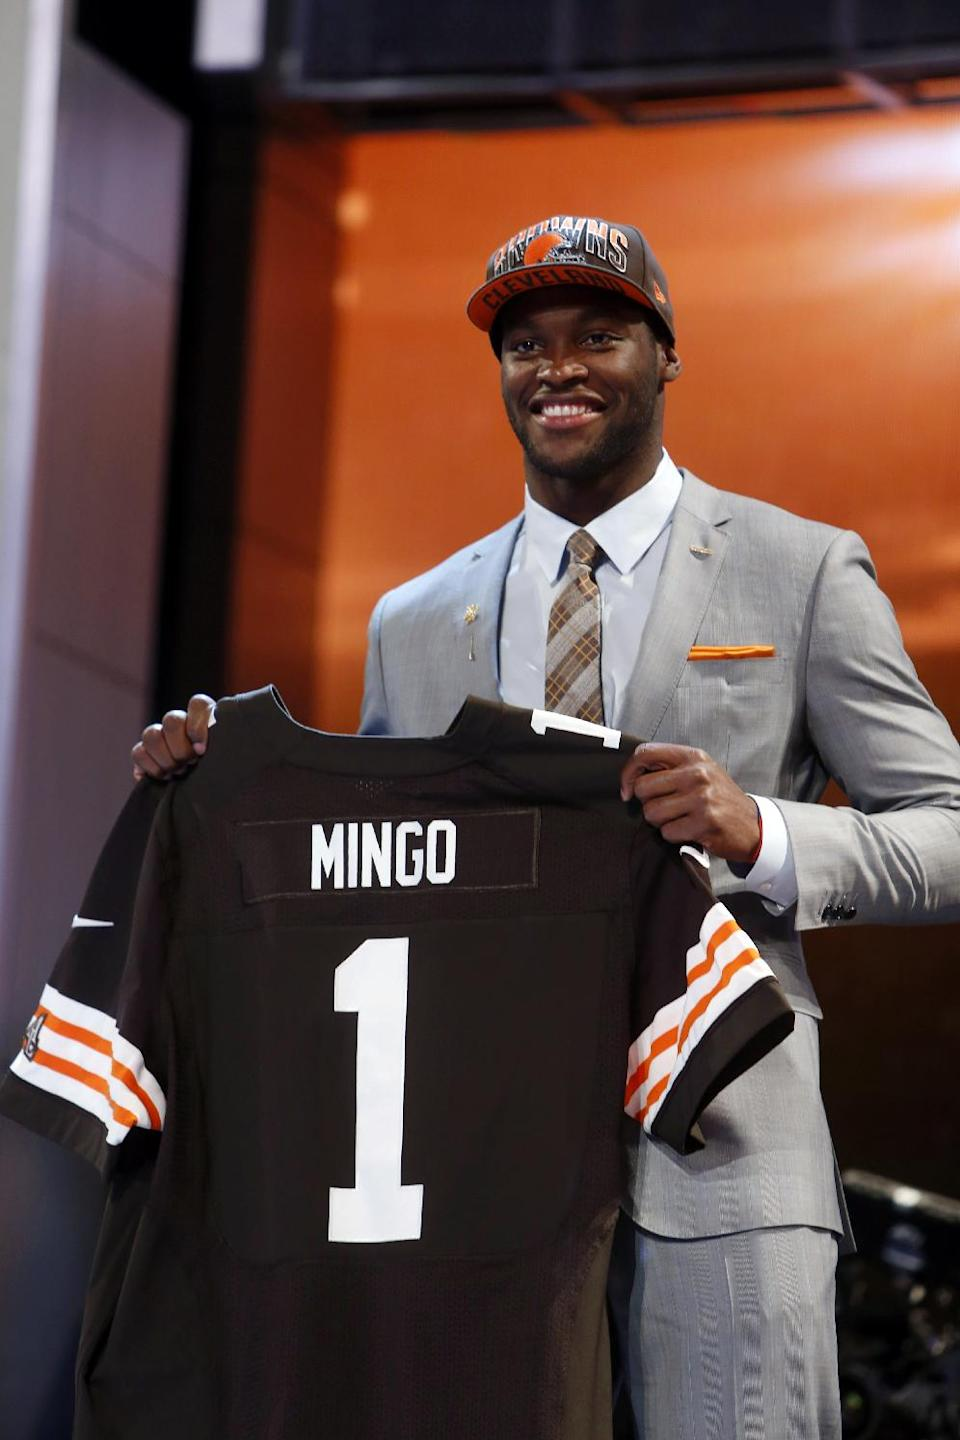 Defensive end Barkevious Ming from Louisiana State holds up the team jersey after being selected sixth overall by the Cleveland Browns in the first round of the NFL football draft, Thursday, April 25, 2013 at Radio City Music Hall in New York.  (AP Photo/Jason DeCrow)